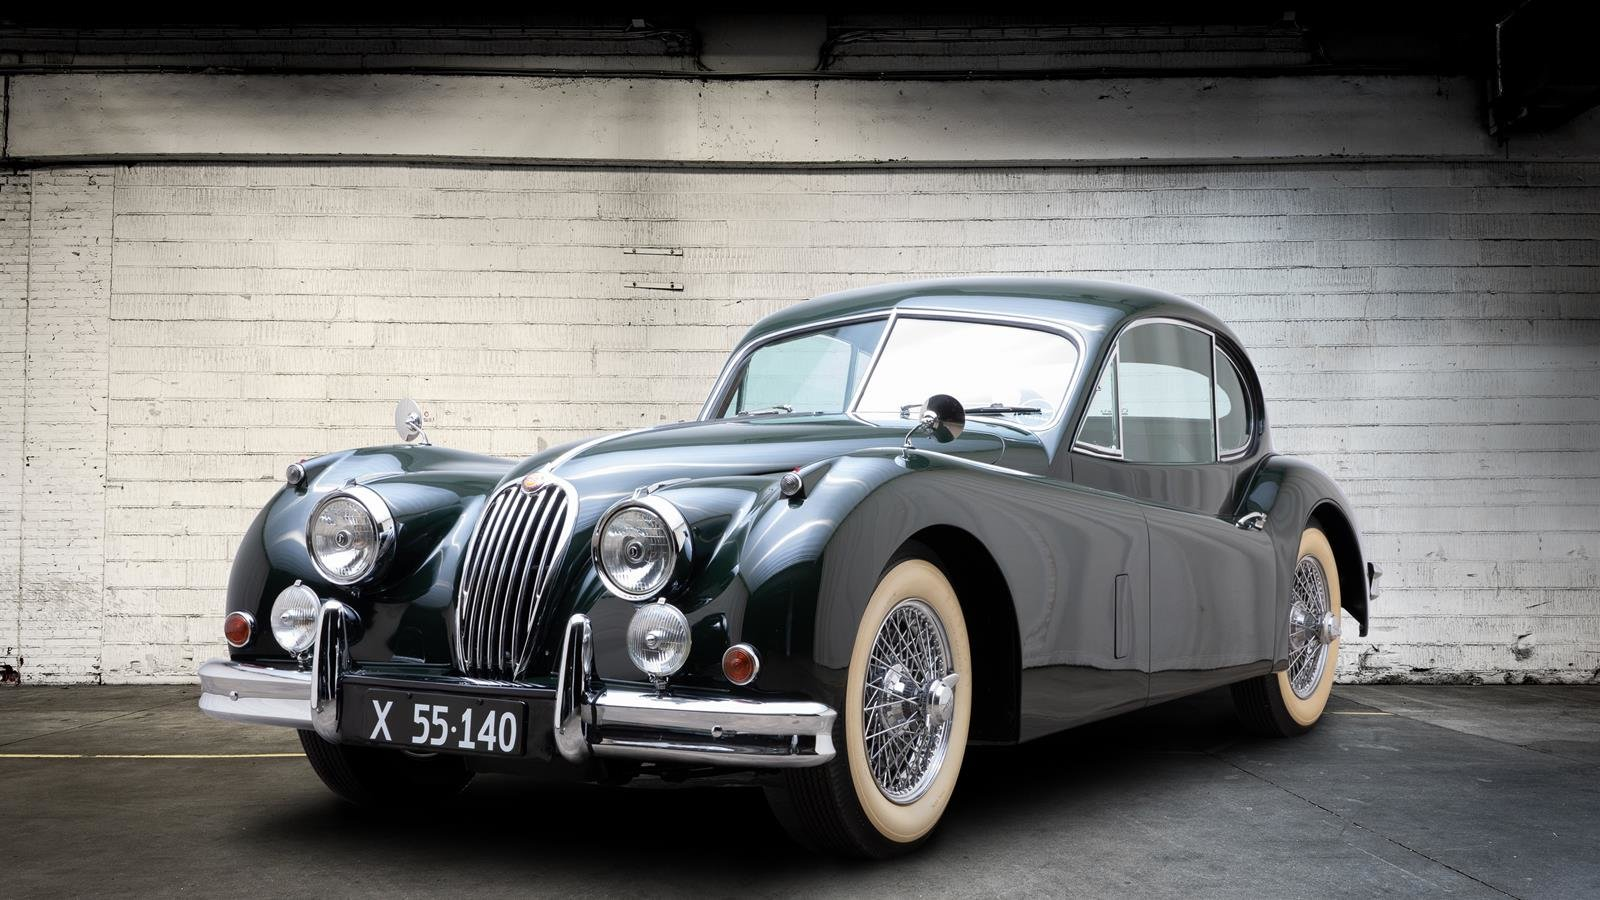 1956 Jaguar xk 140 3,4 fch For Sale (picture 1 of 6)